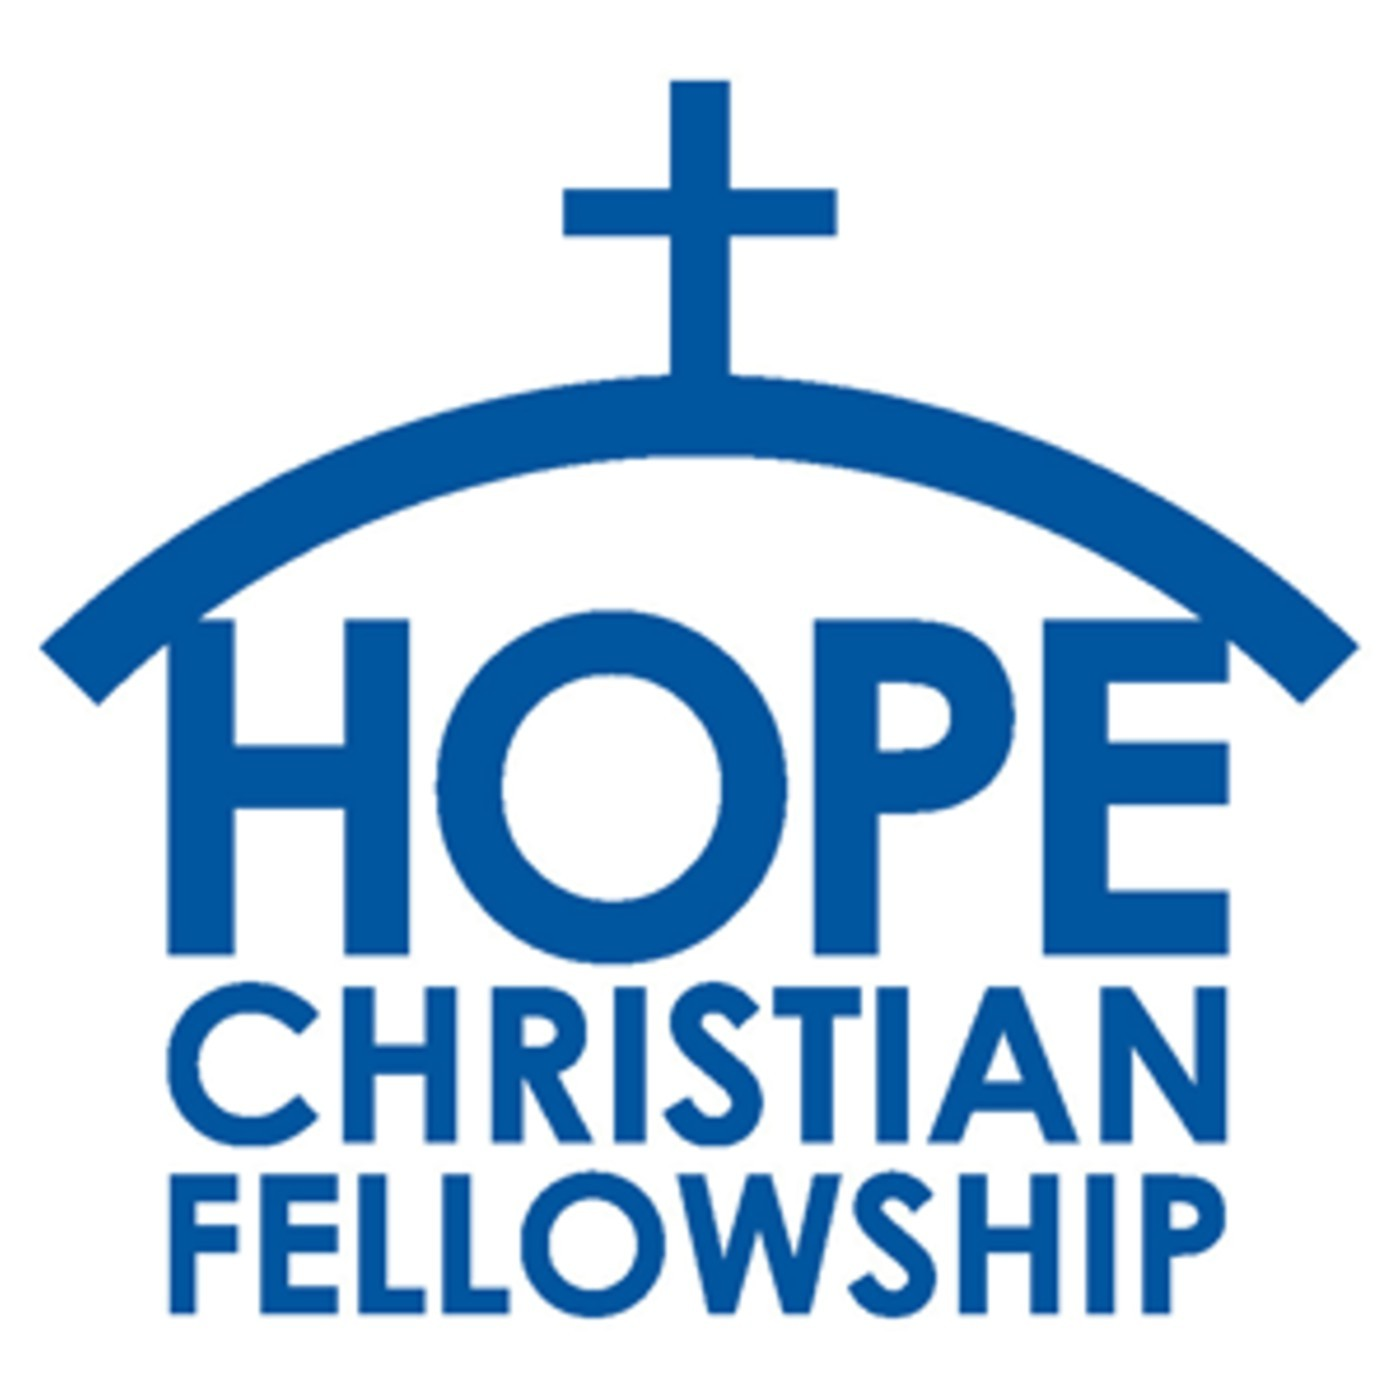 HOPE Christian Fellowship Podcast